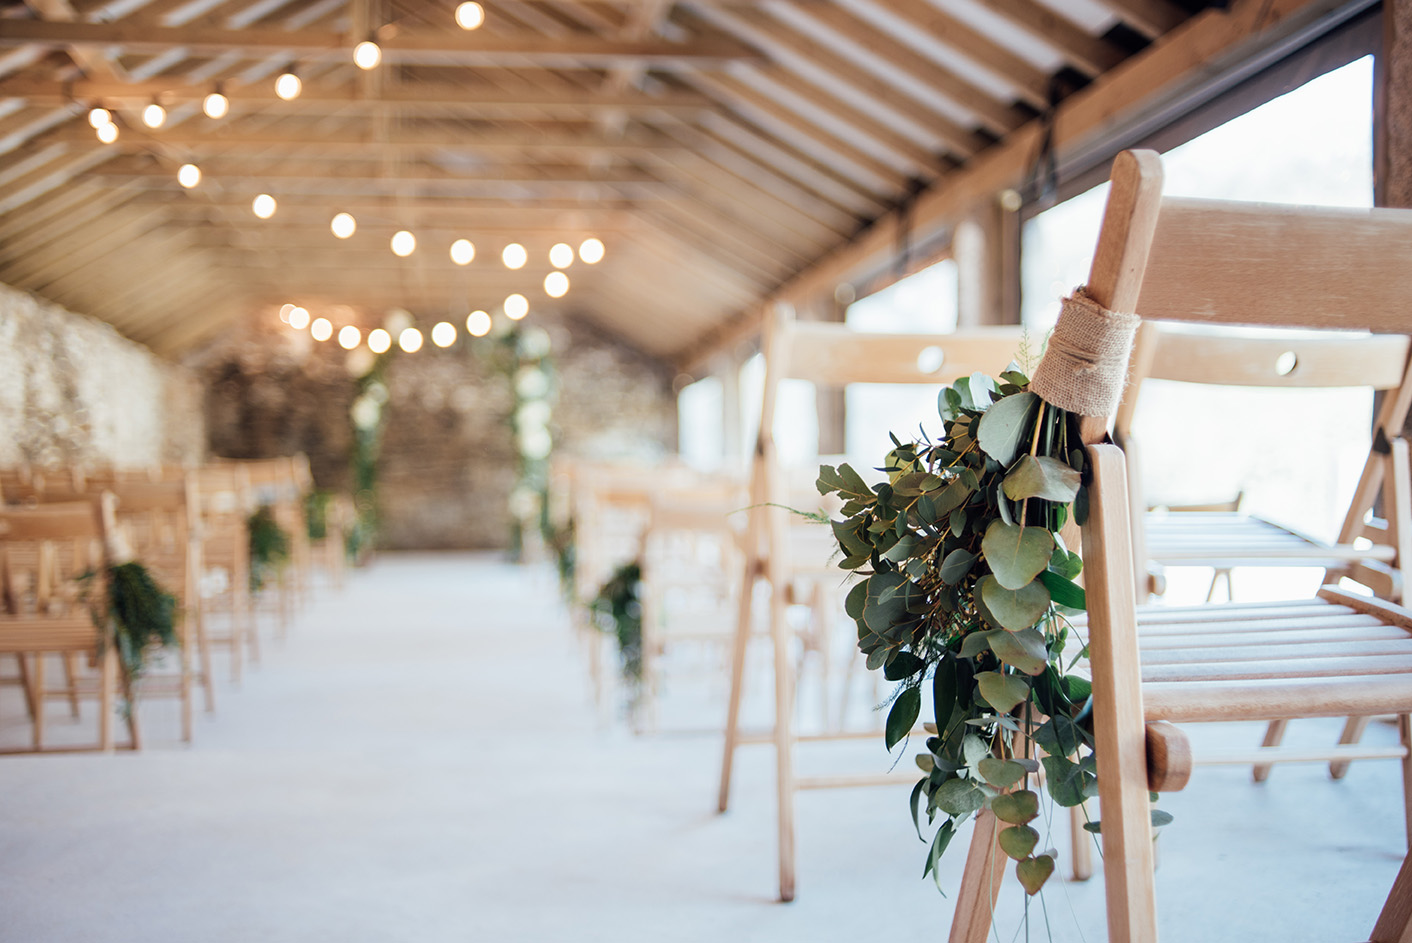 The inside of the Cowyard Barn rustic party and reception space set for a wedding ceremony at Pengenna Manor Cornwall wedding venue02.jpg